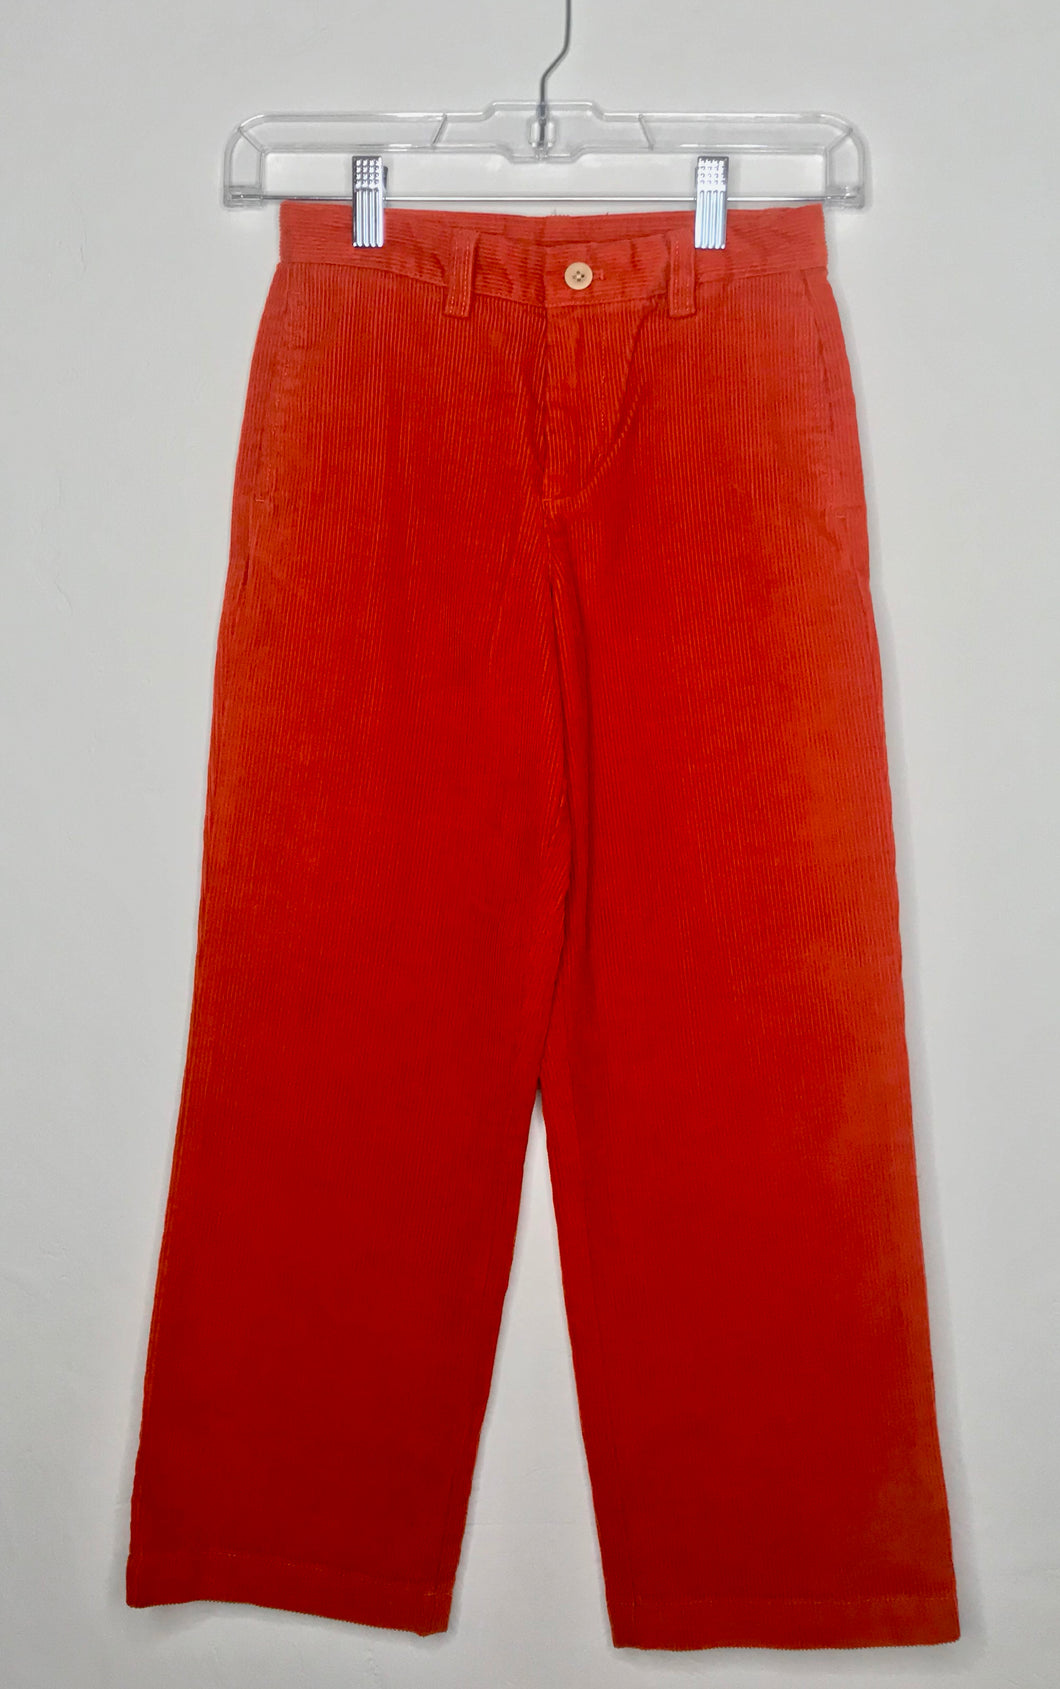 Vineyard Vines Corduroy Pants (new with tags)